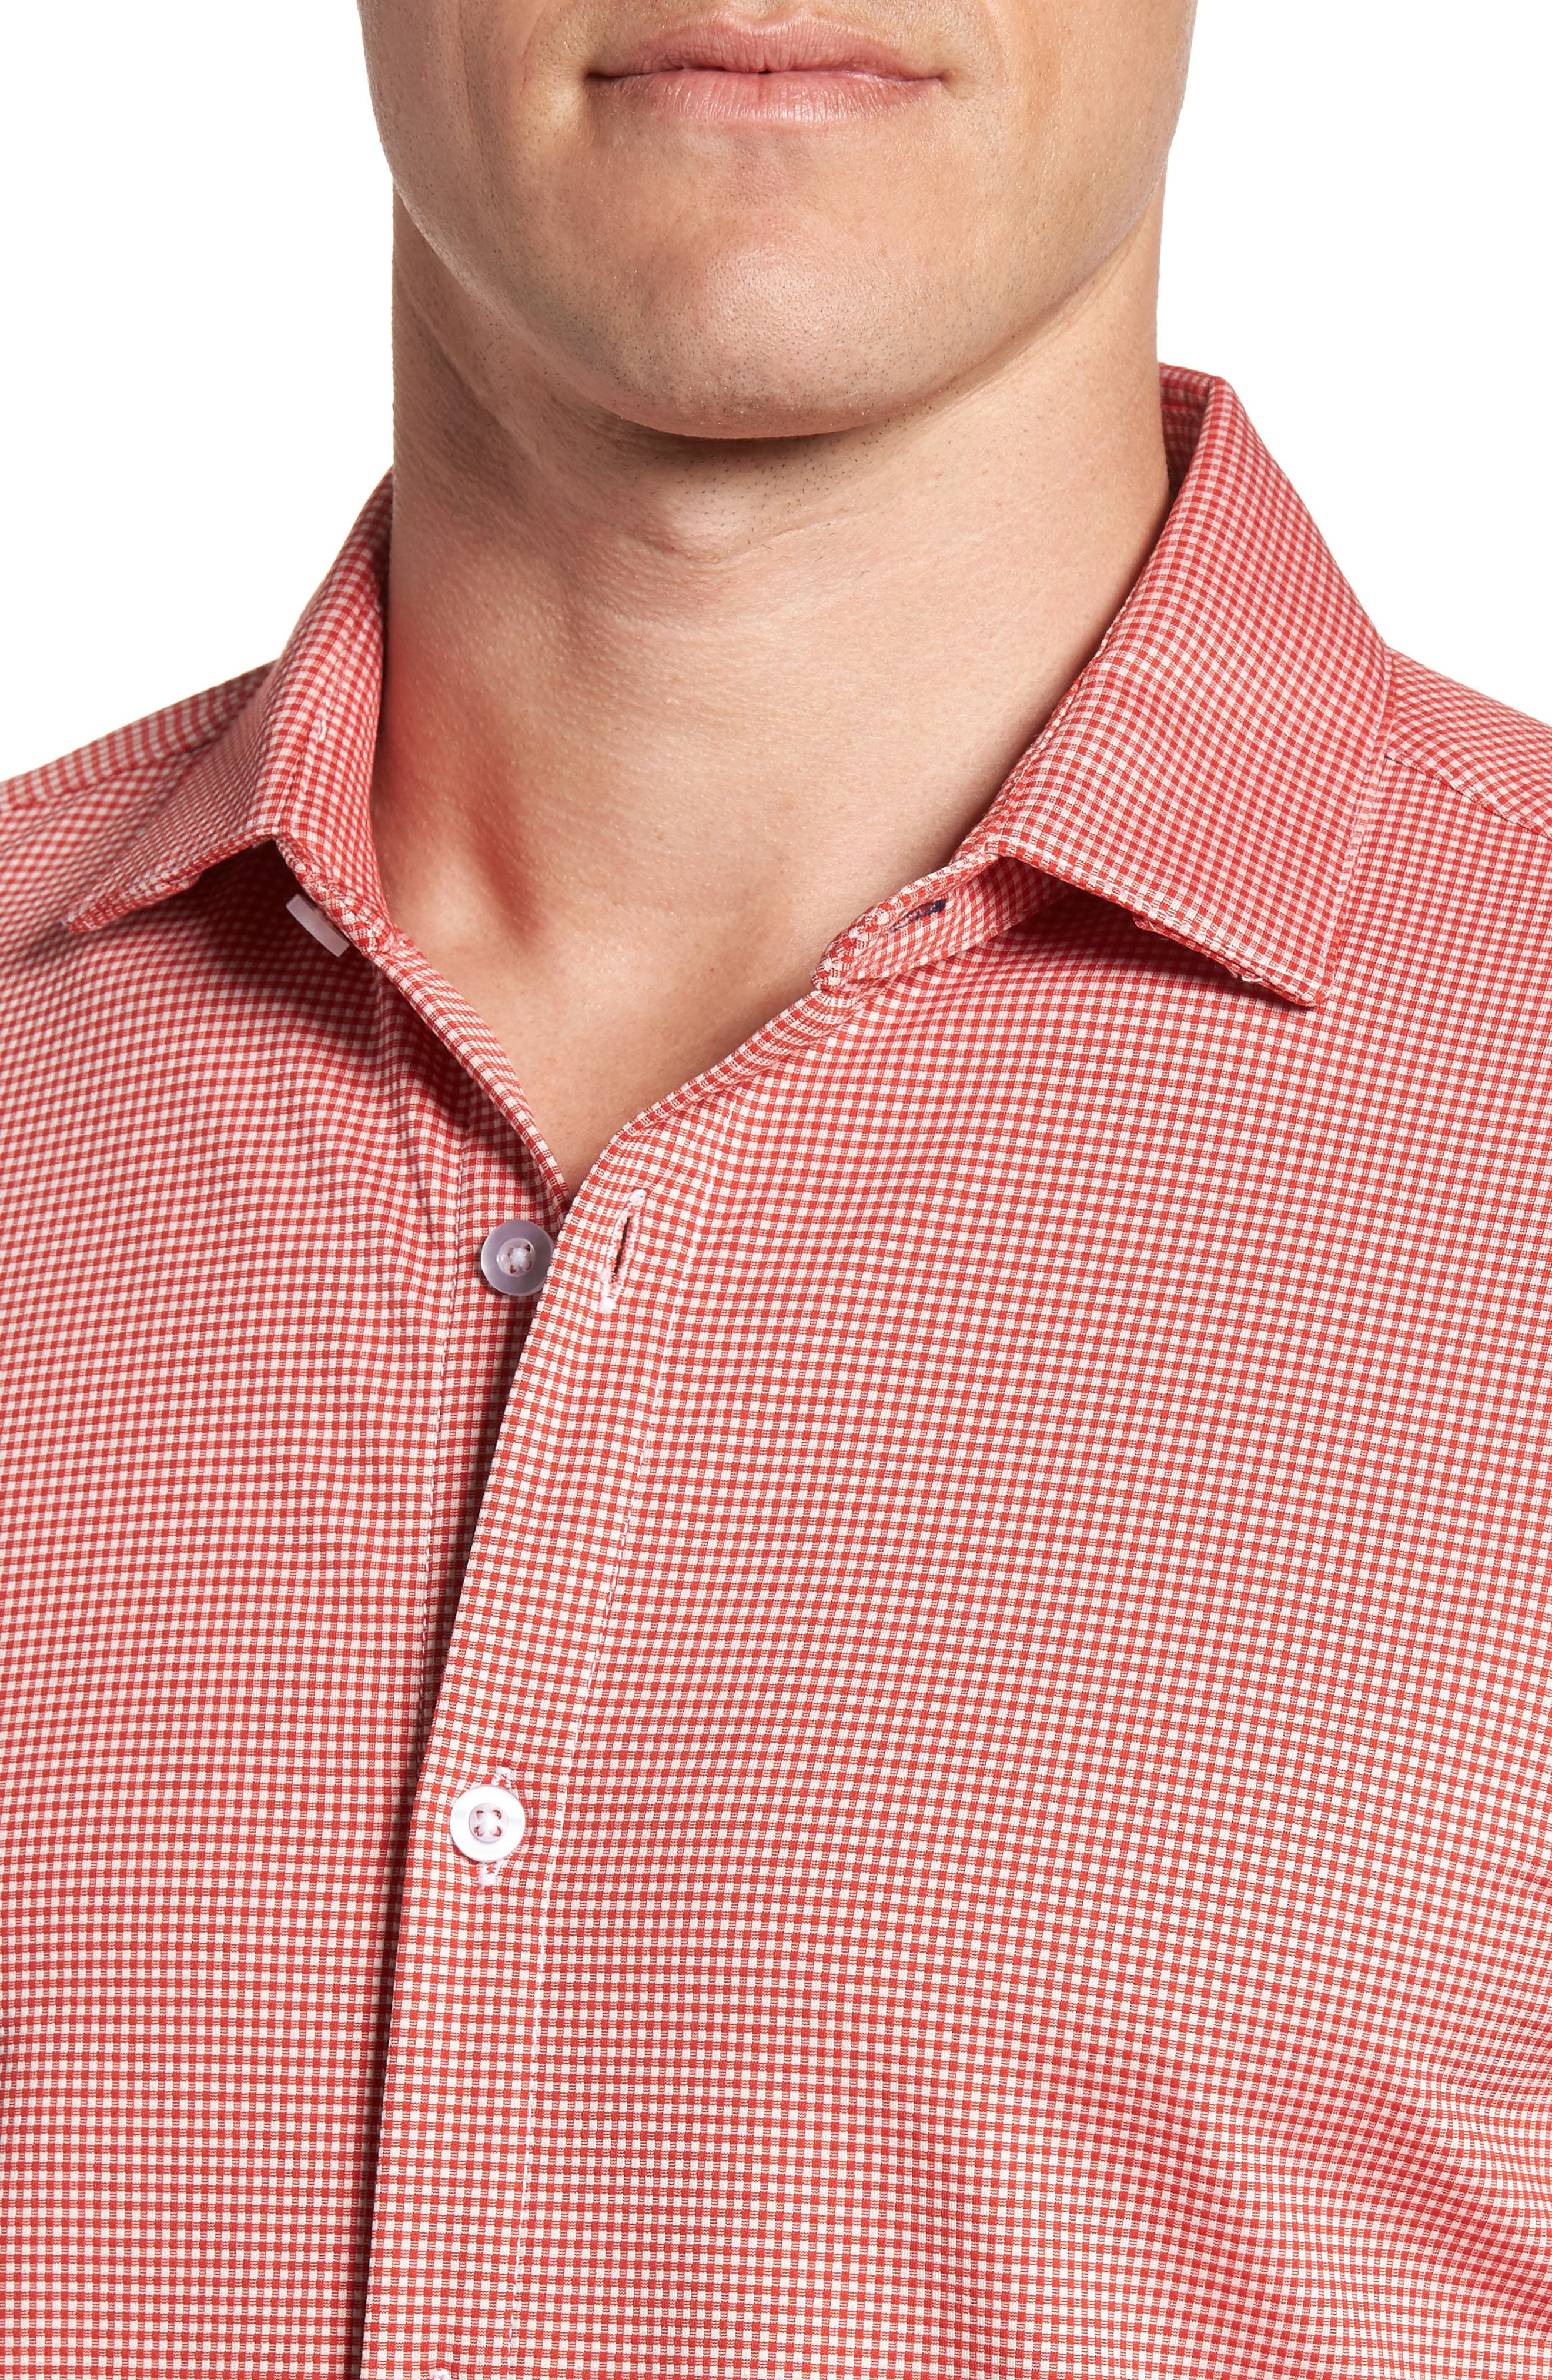 Hawthorne Gingham Sport Shirt,                             Alternate thumbnail 2, color,                             Red